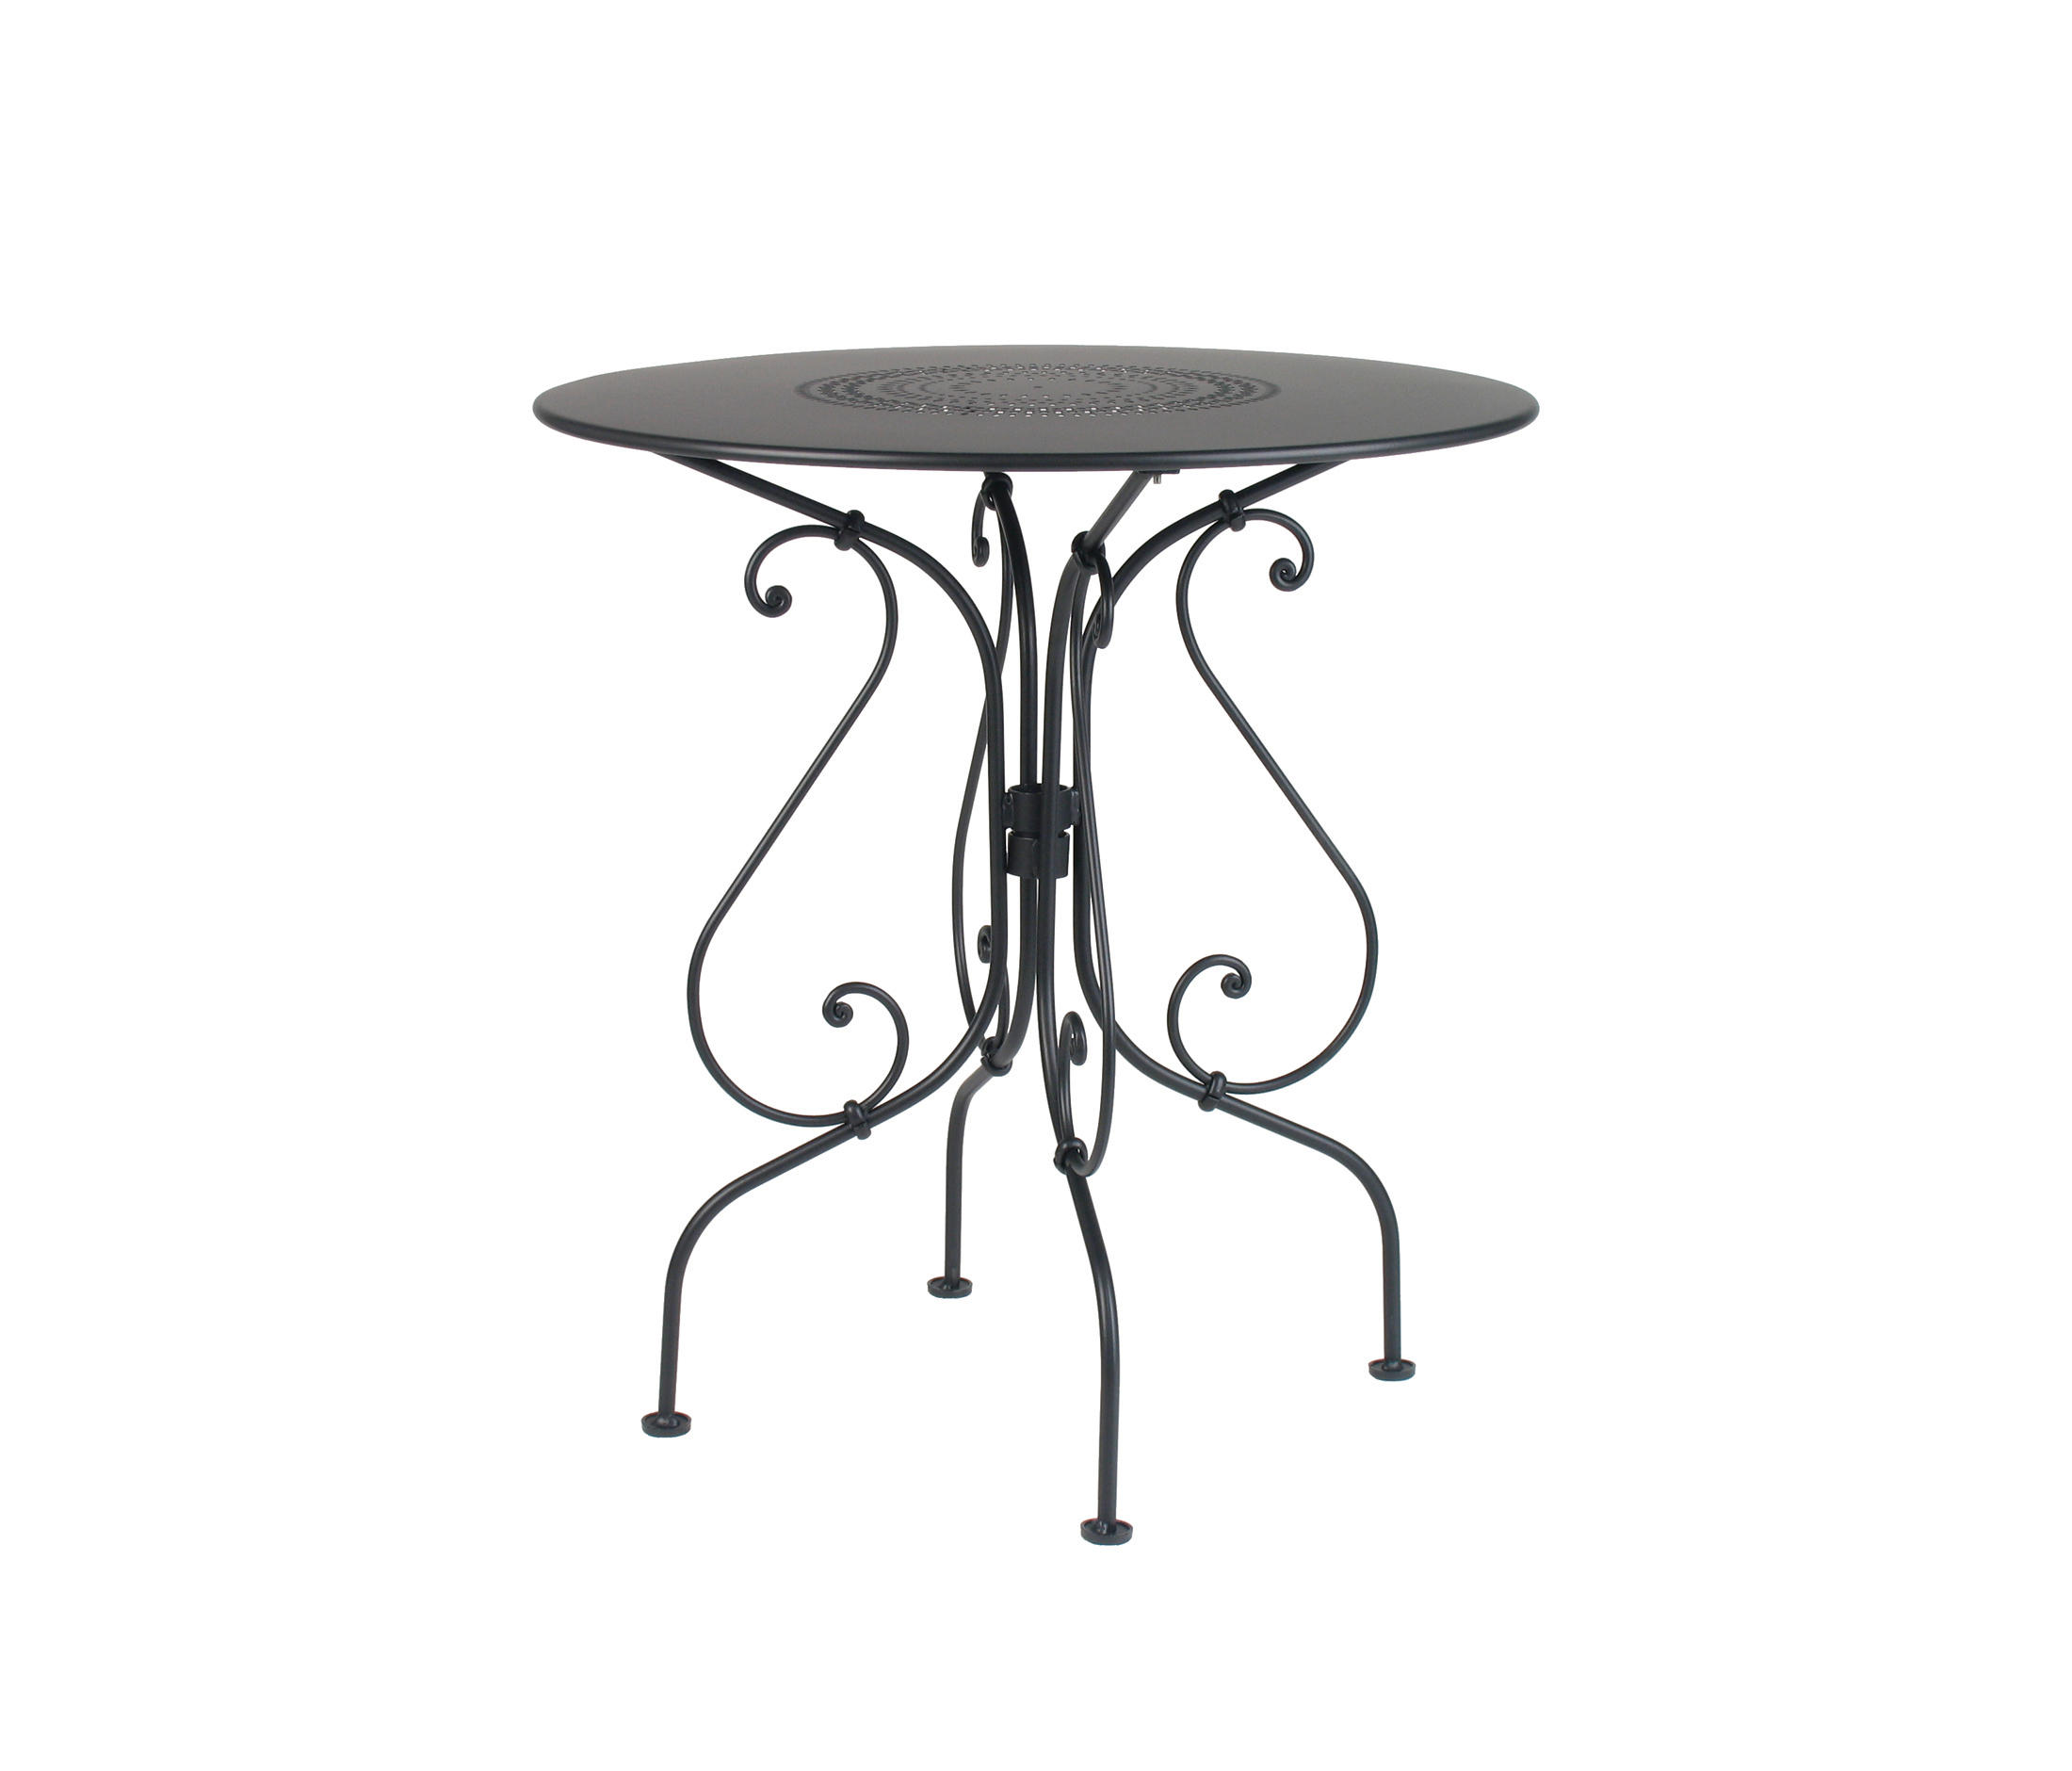 1900 pedestal table 67cm cafeteria tables from fermob. Black Bedroom Furniture Sets. Home Design Ideas